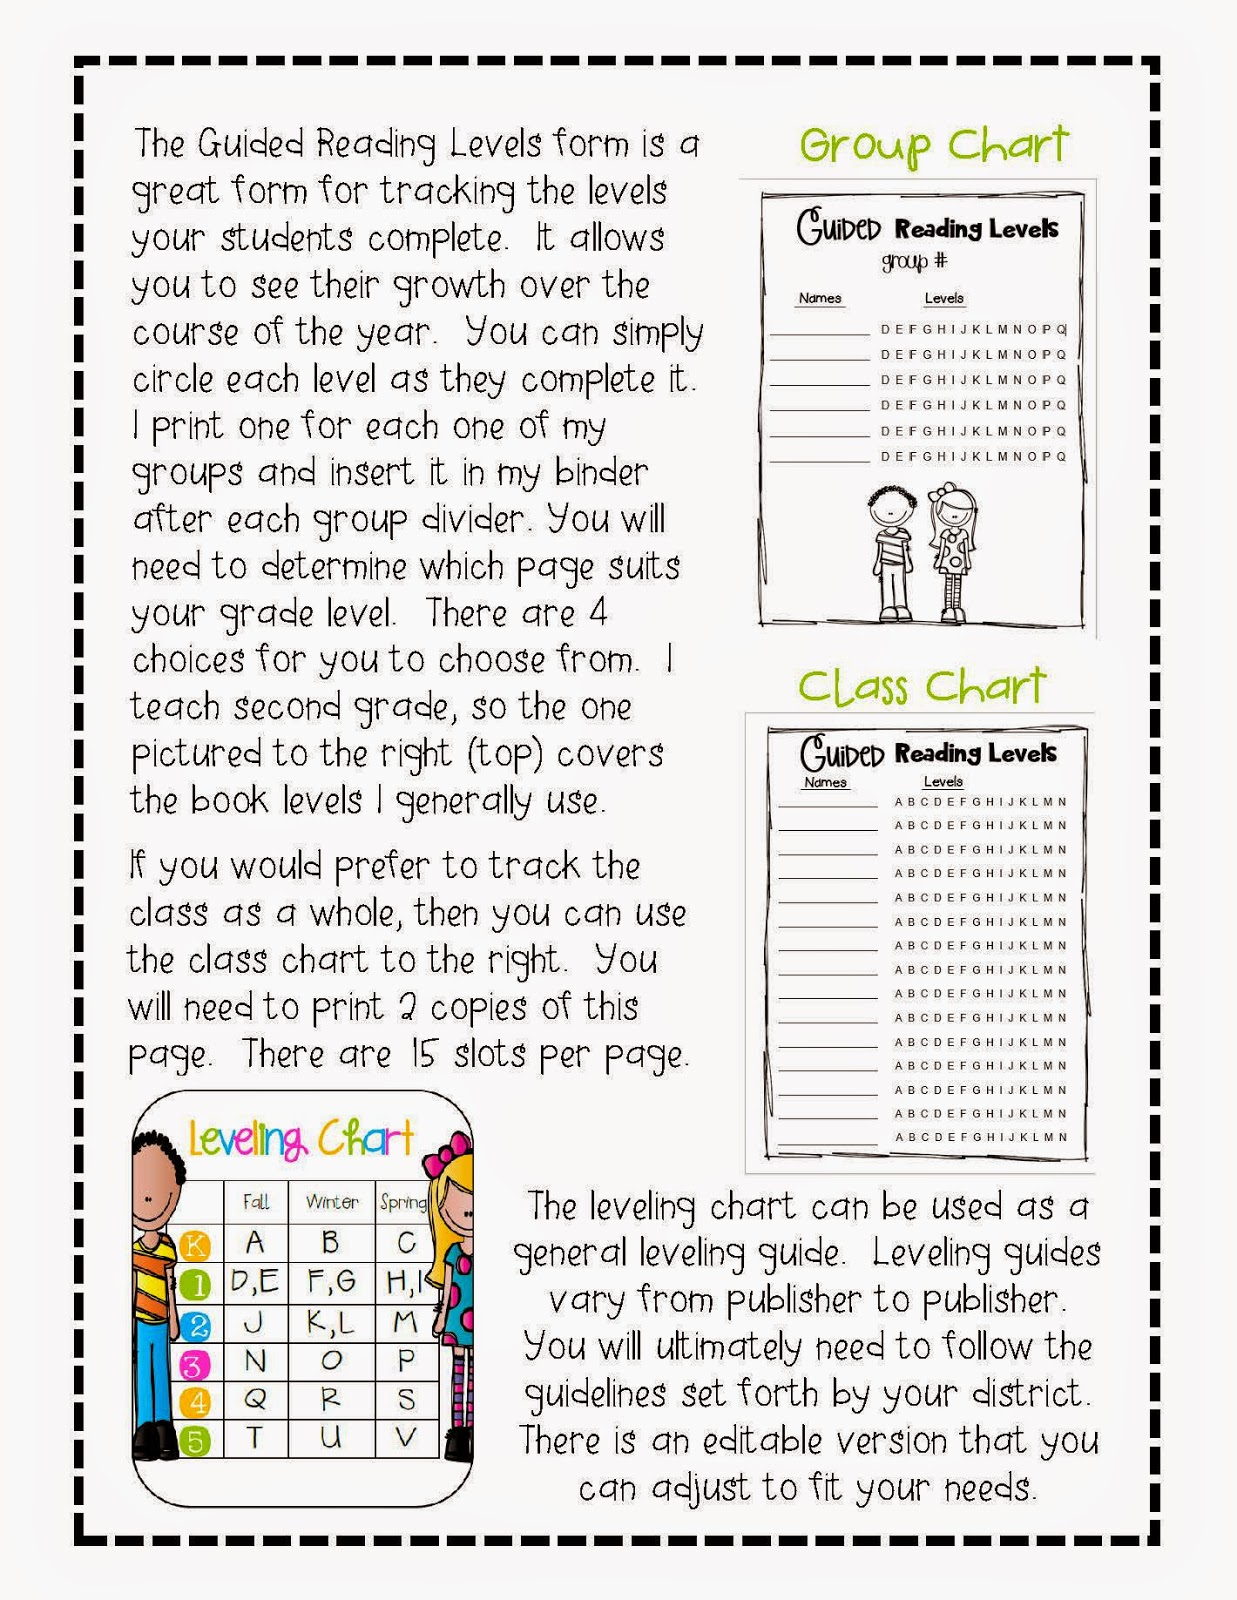 Totally terrific in texas october 2014 i also have another resource that i created this summer that ive fallen in love with it is just a simple ring of cards that lists a few reading behaviors geenschuldenfo Image collections